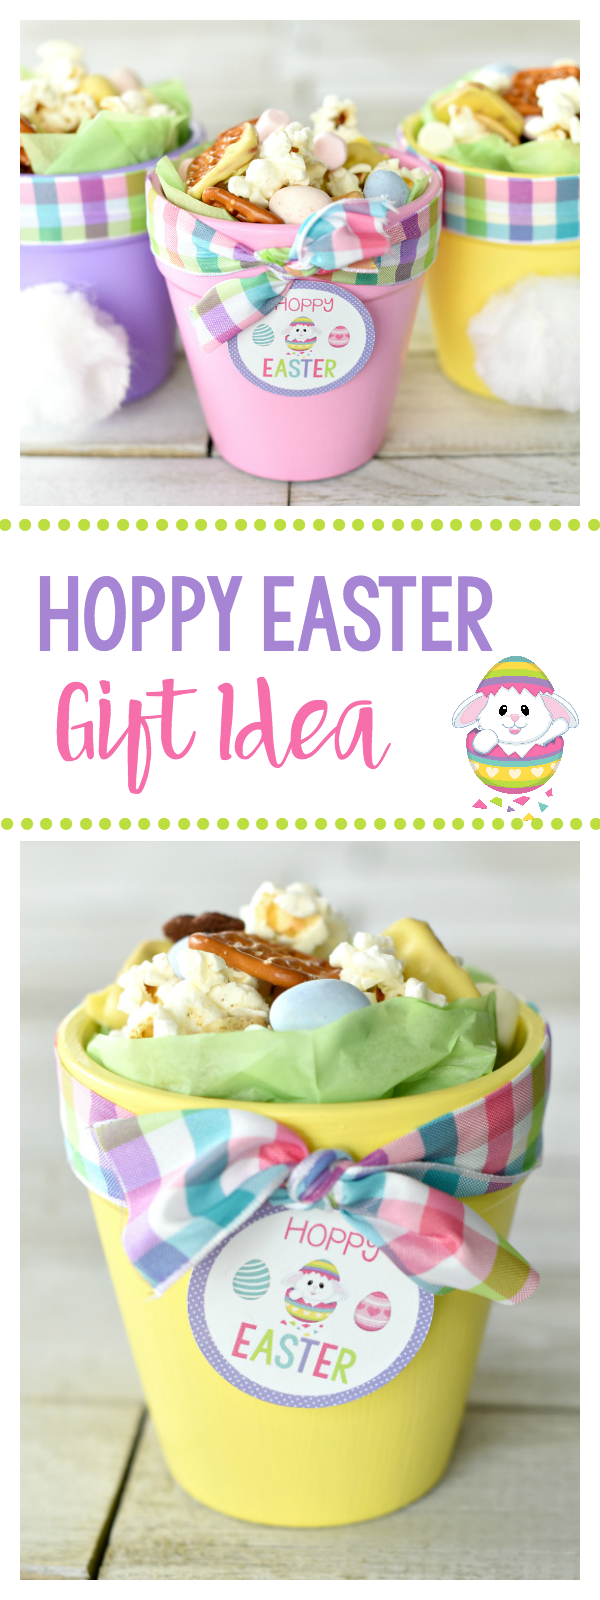 Cute Easter Gift-Bunny Pots Filled with a Fun Easter Snack Mix. This cute Easter craft idea is fun to do with the kids or to make as an Easter gift for friends! Plus the snack mix tastes amazing! #easter #snacks #crafts #eastercrafts